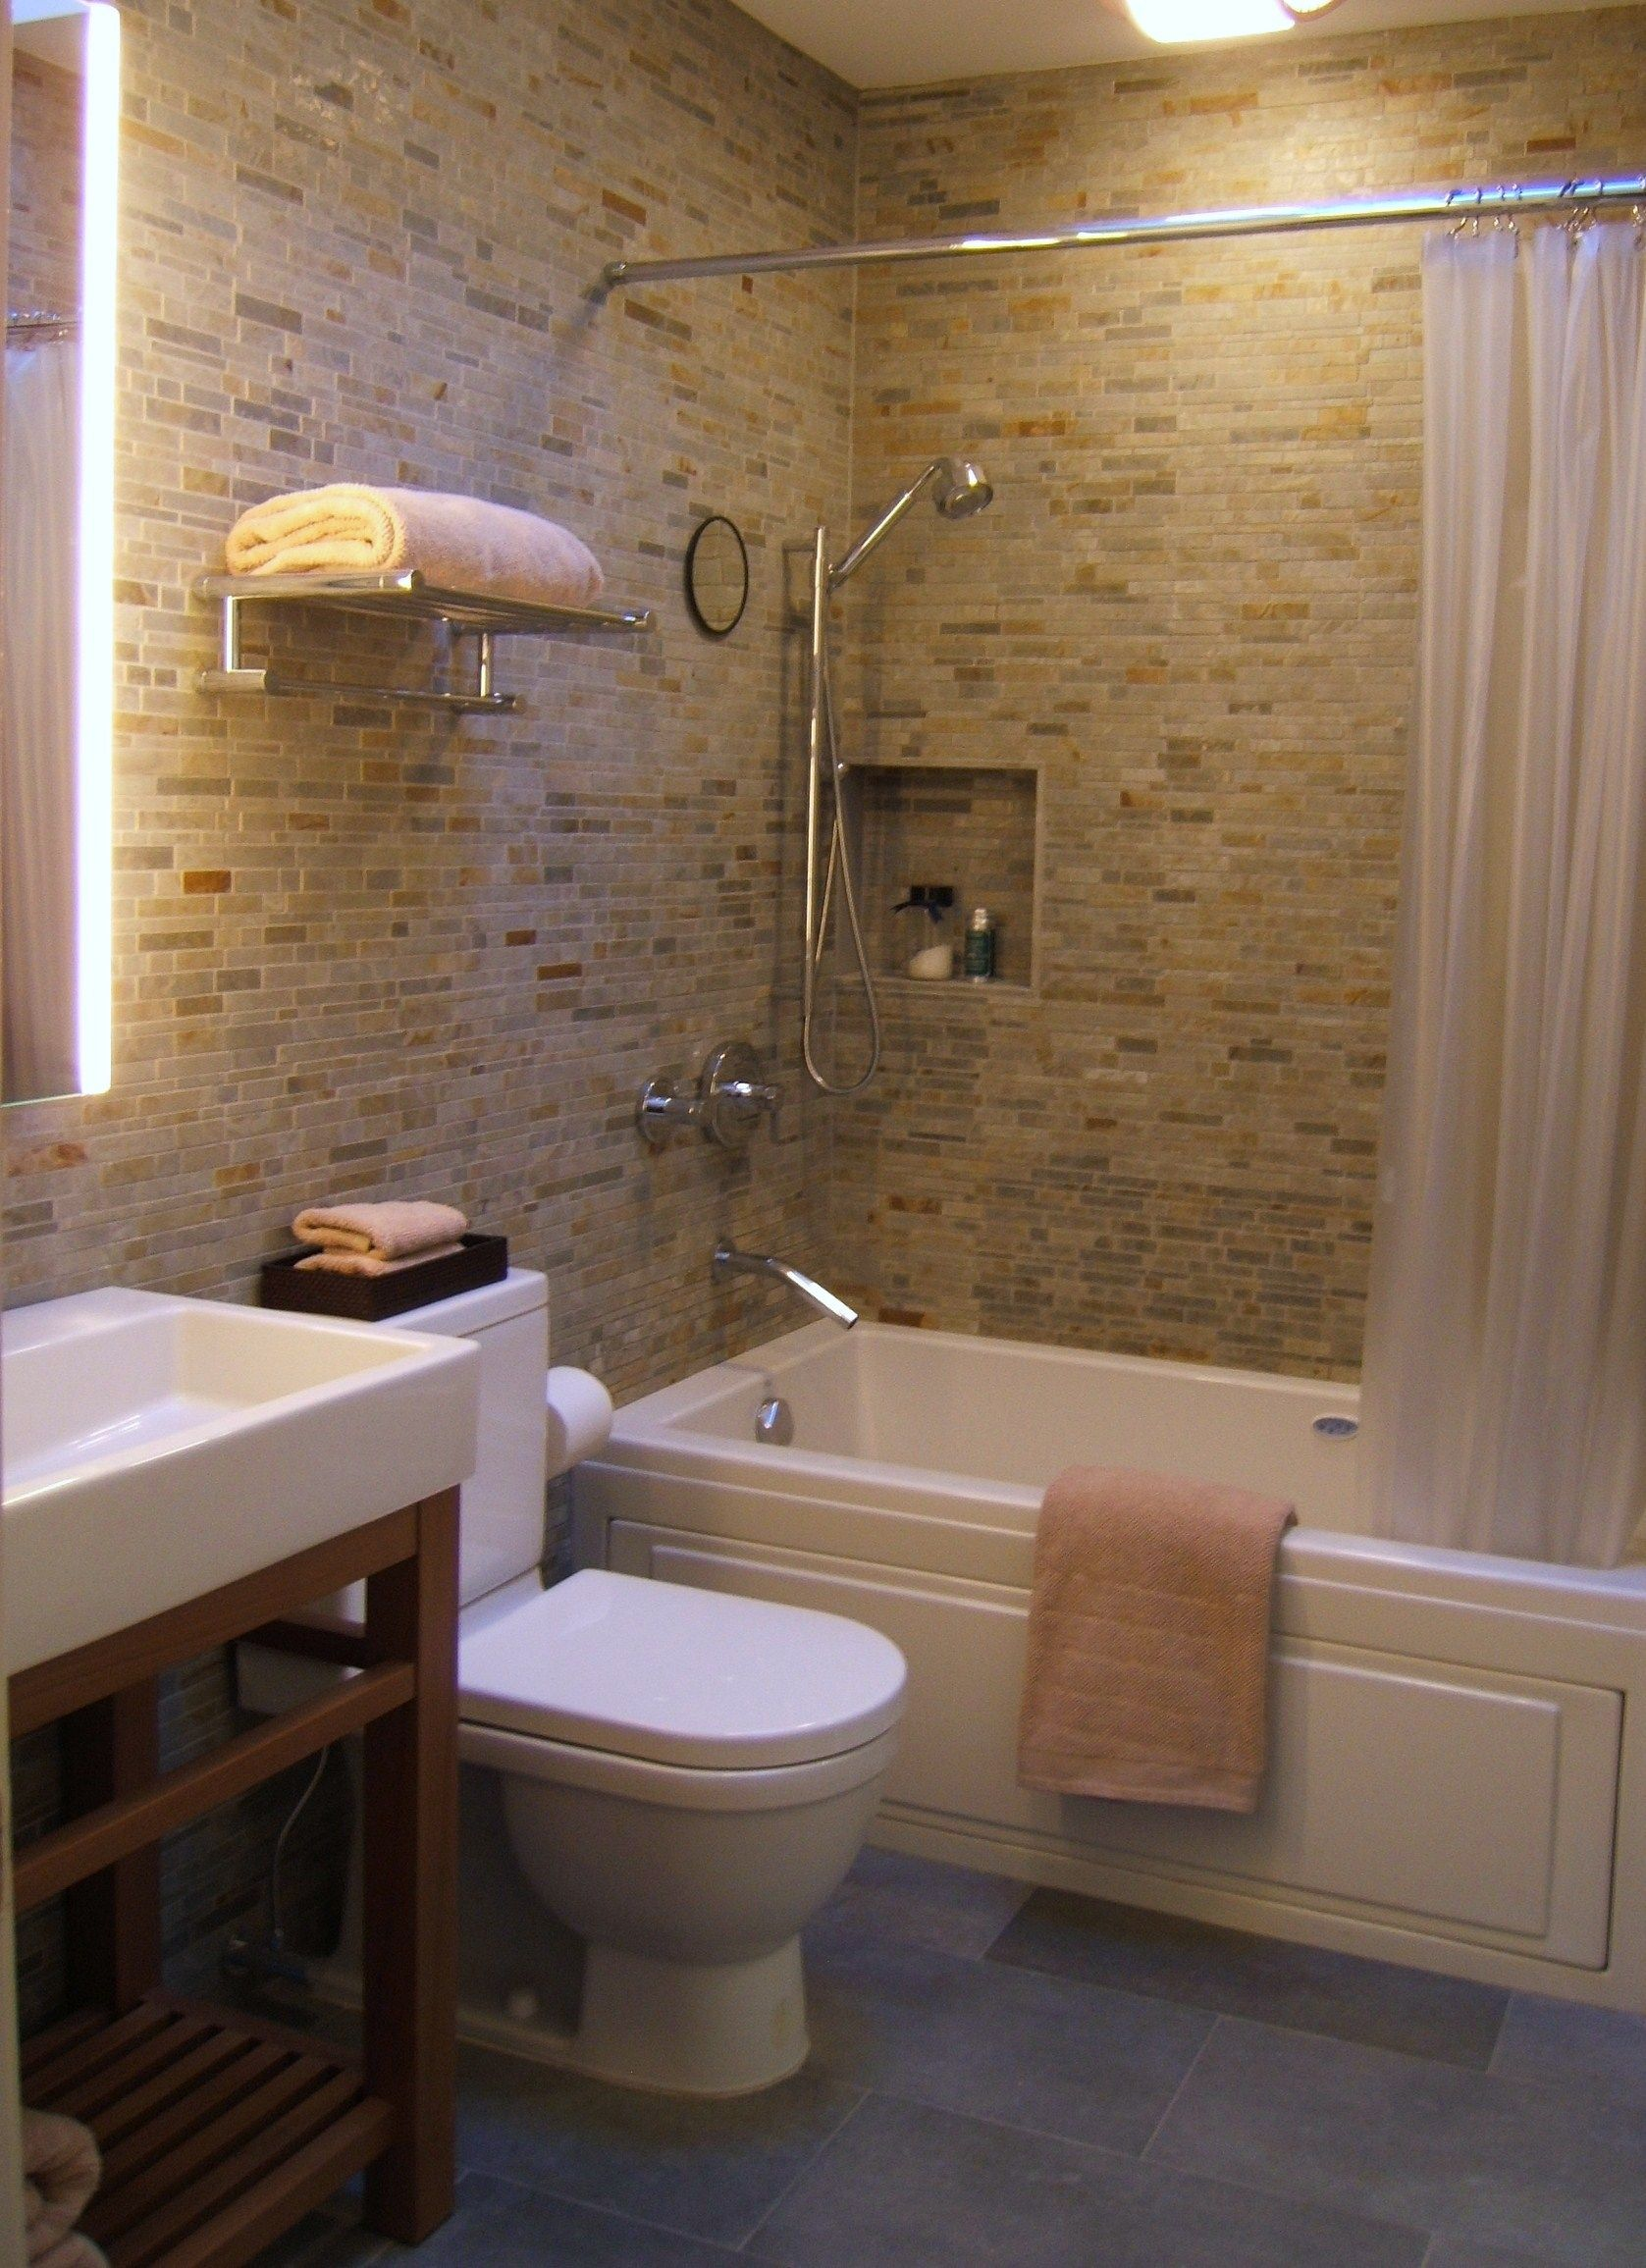 Small bathroom designs south africa small bath for Tiny bathroom decor